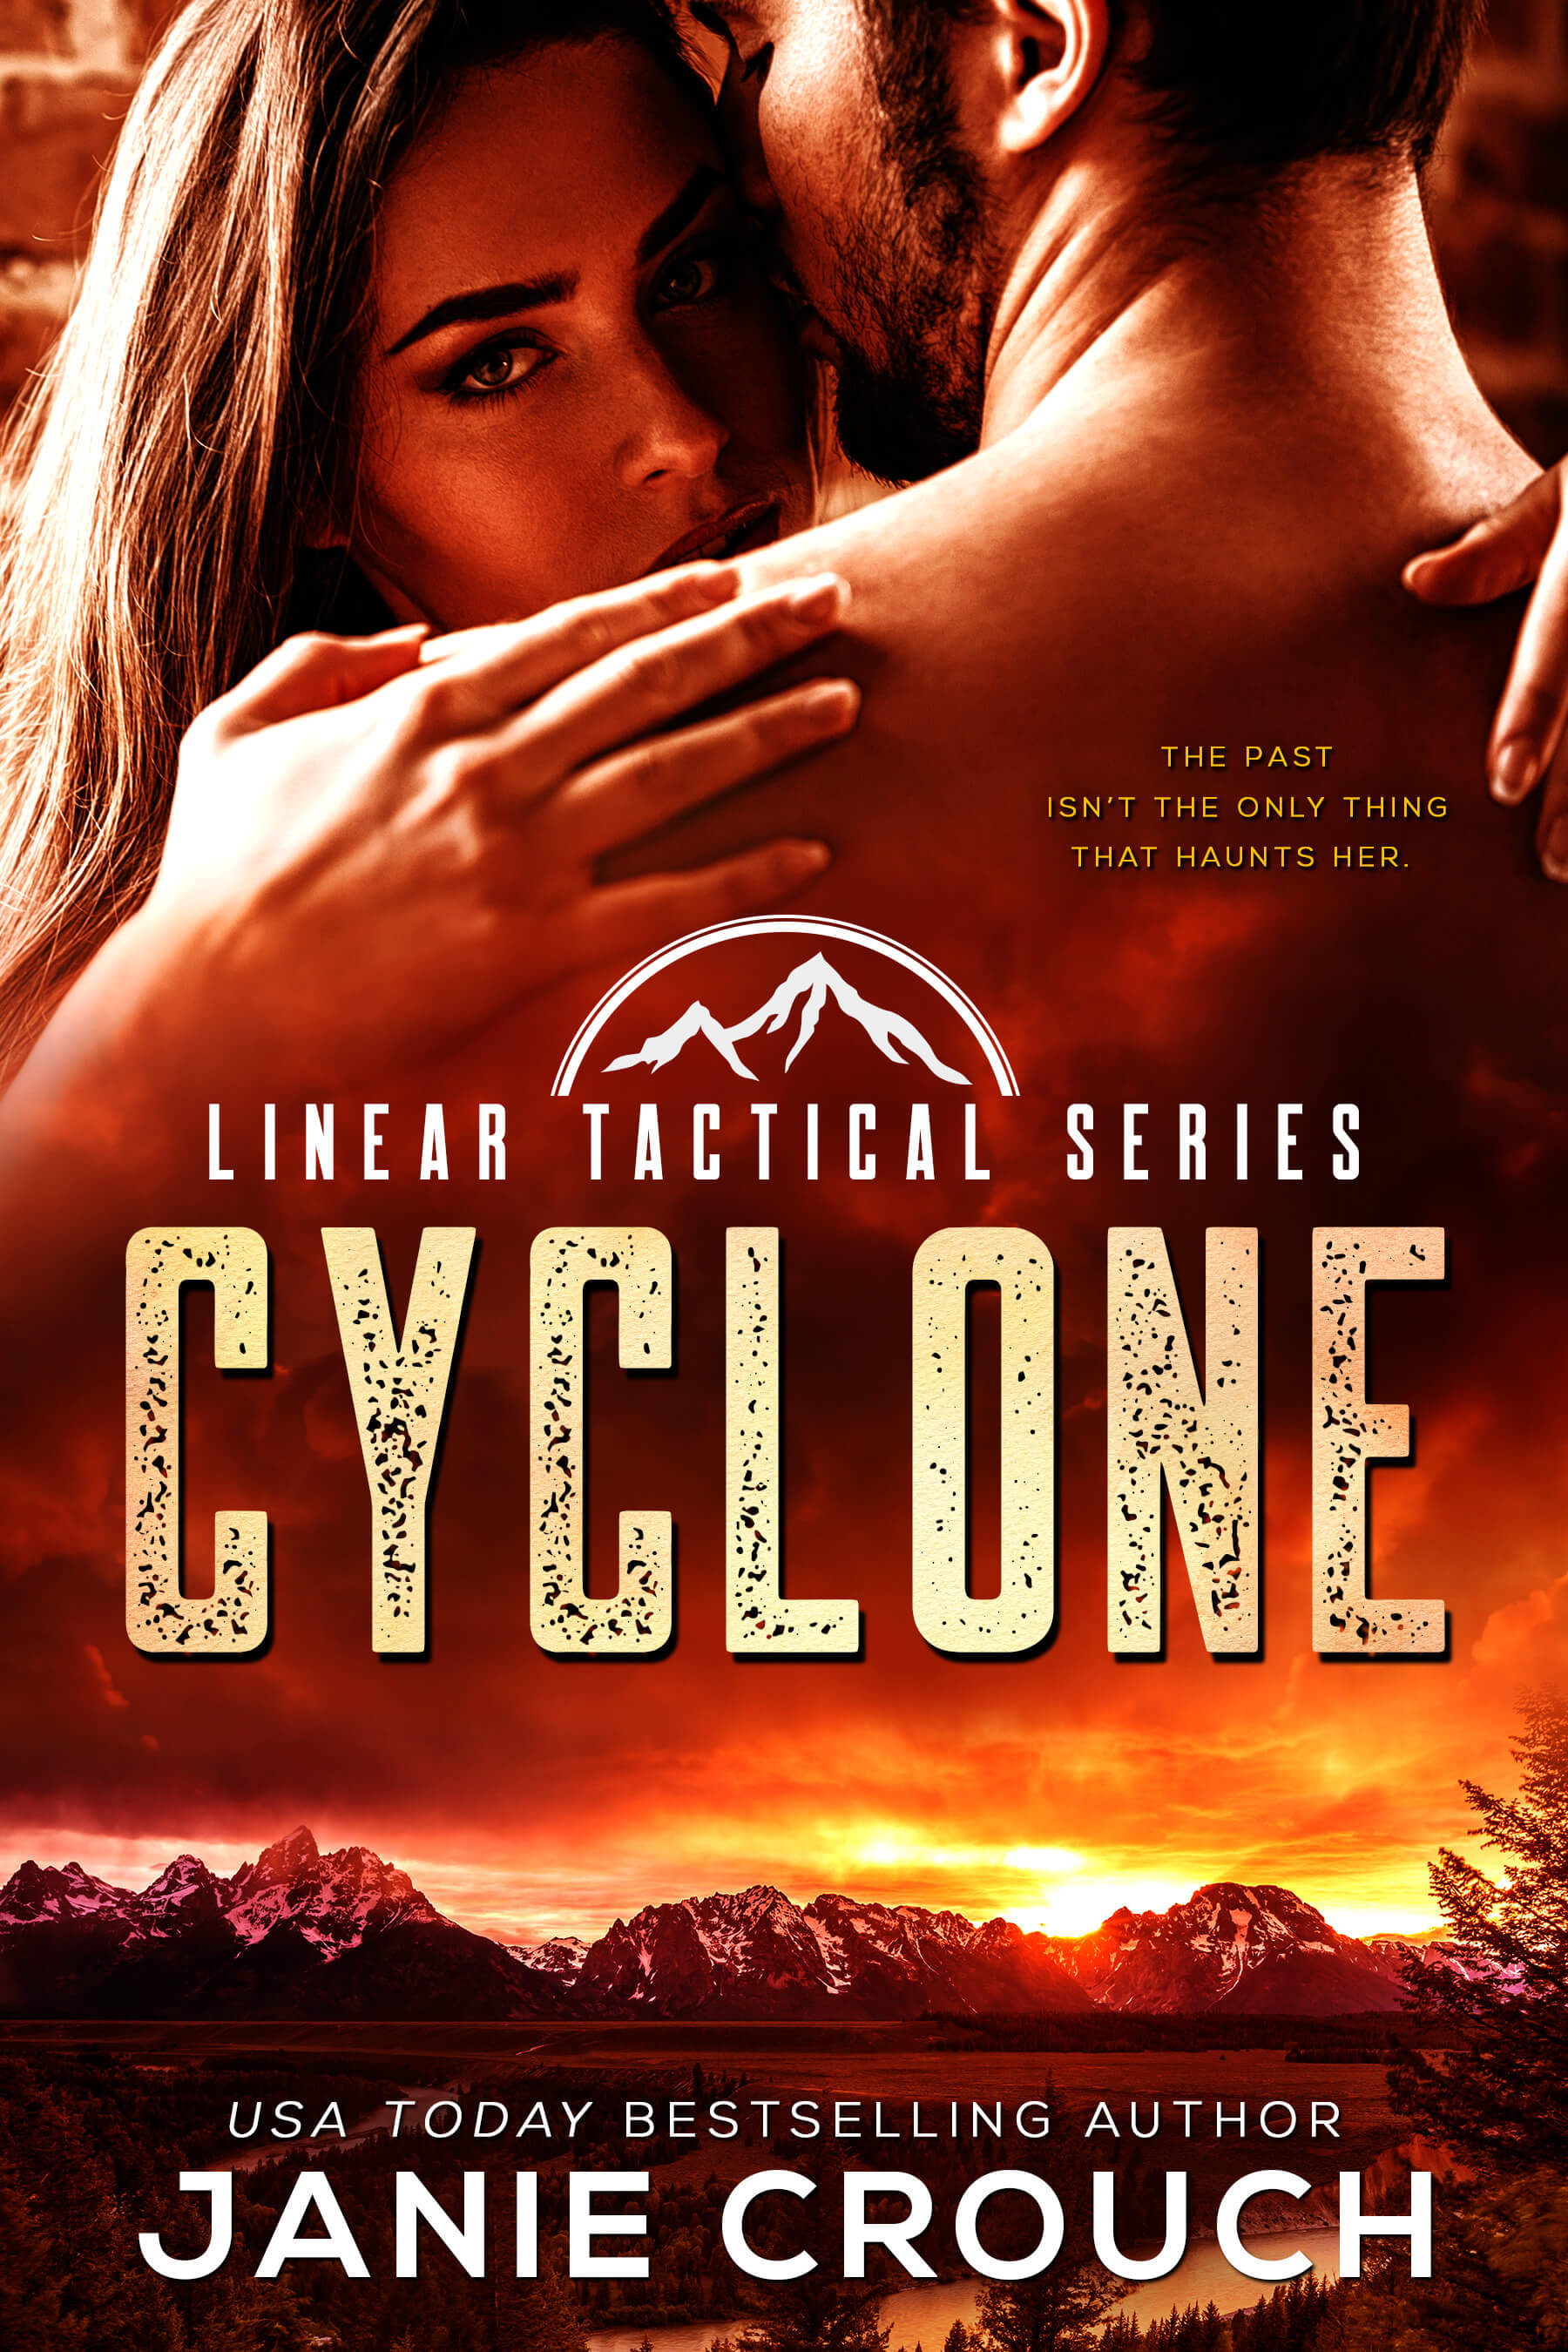 Cyclone by Janie Crouch